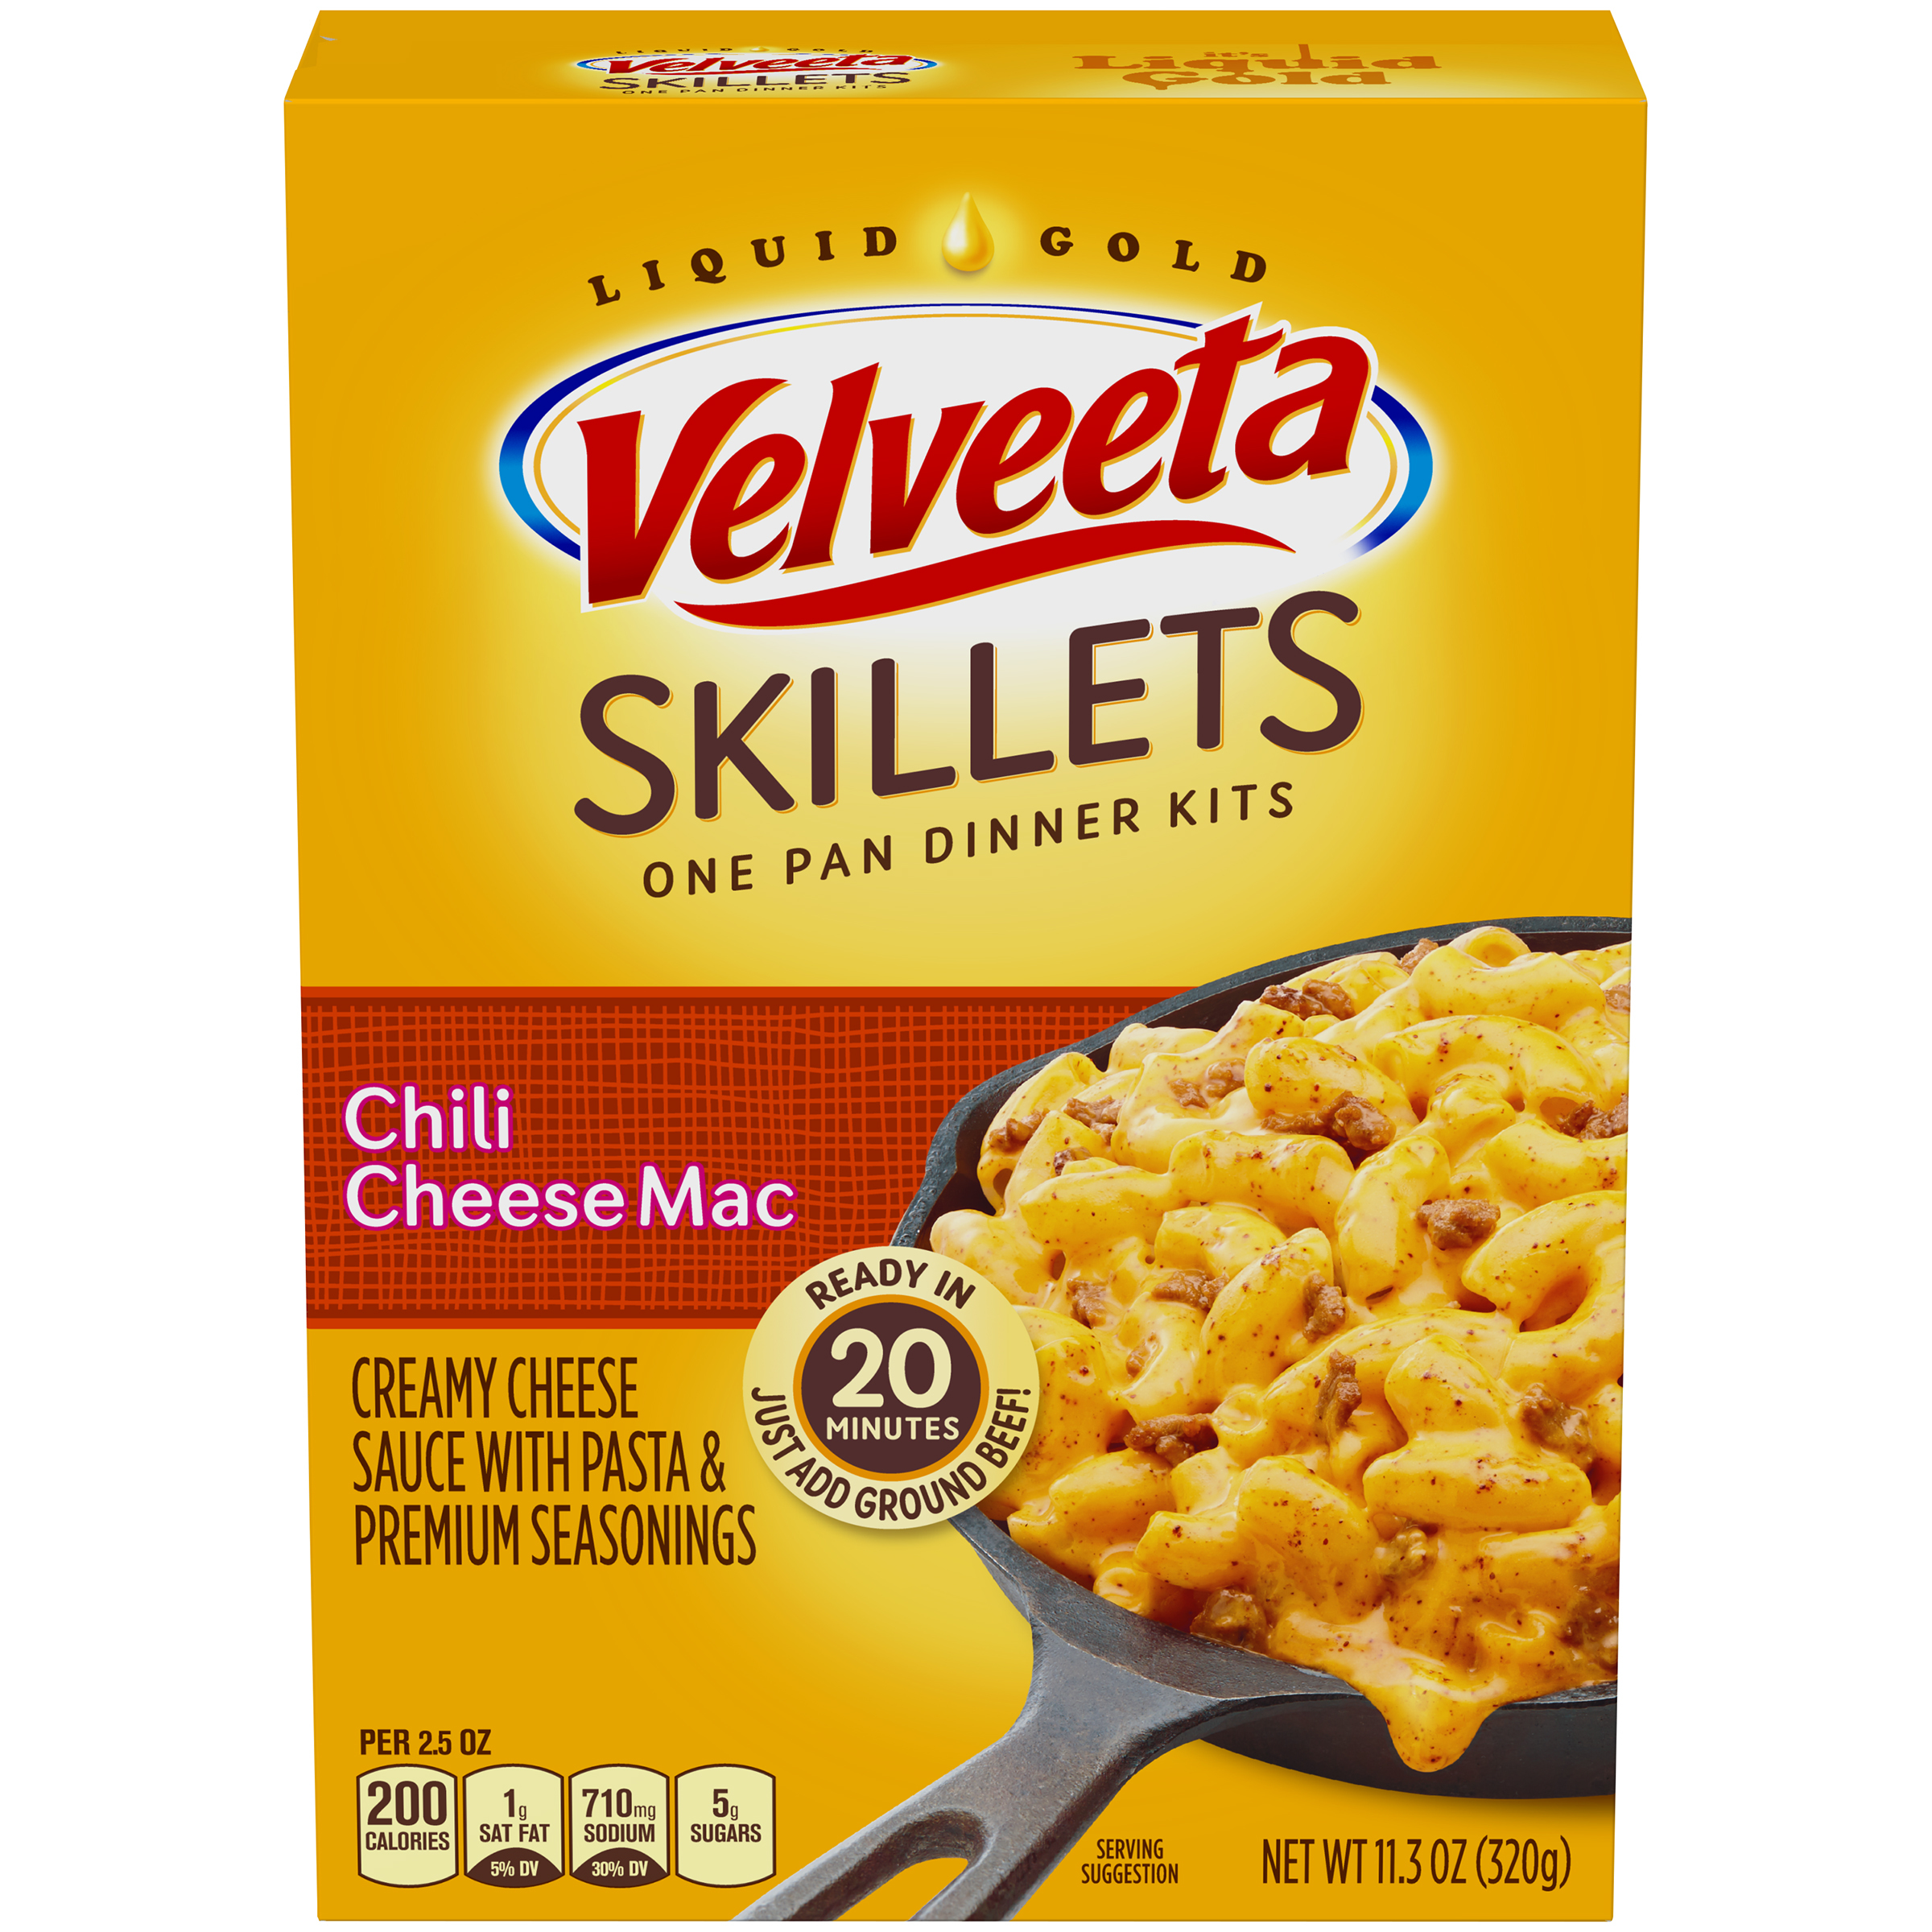 Velveeta Cheesy Skillets Chili Cheese Mac Dinner Kit